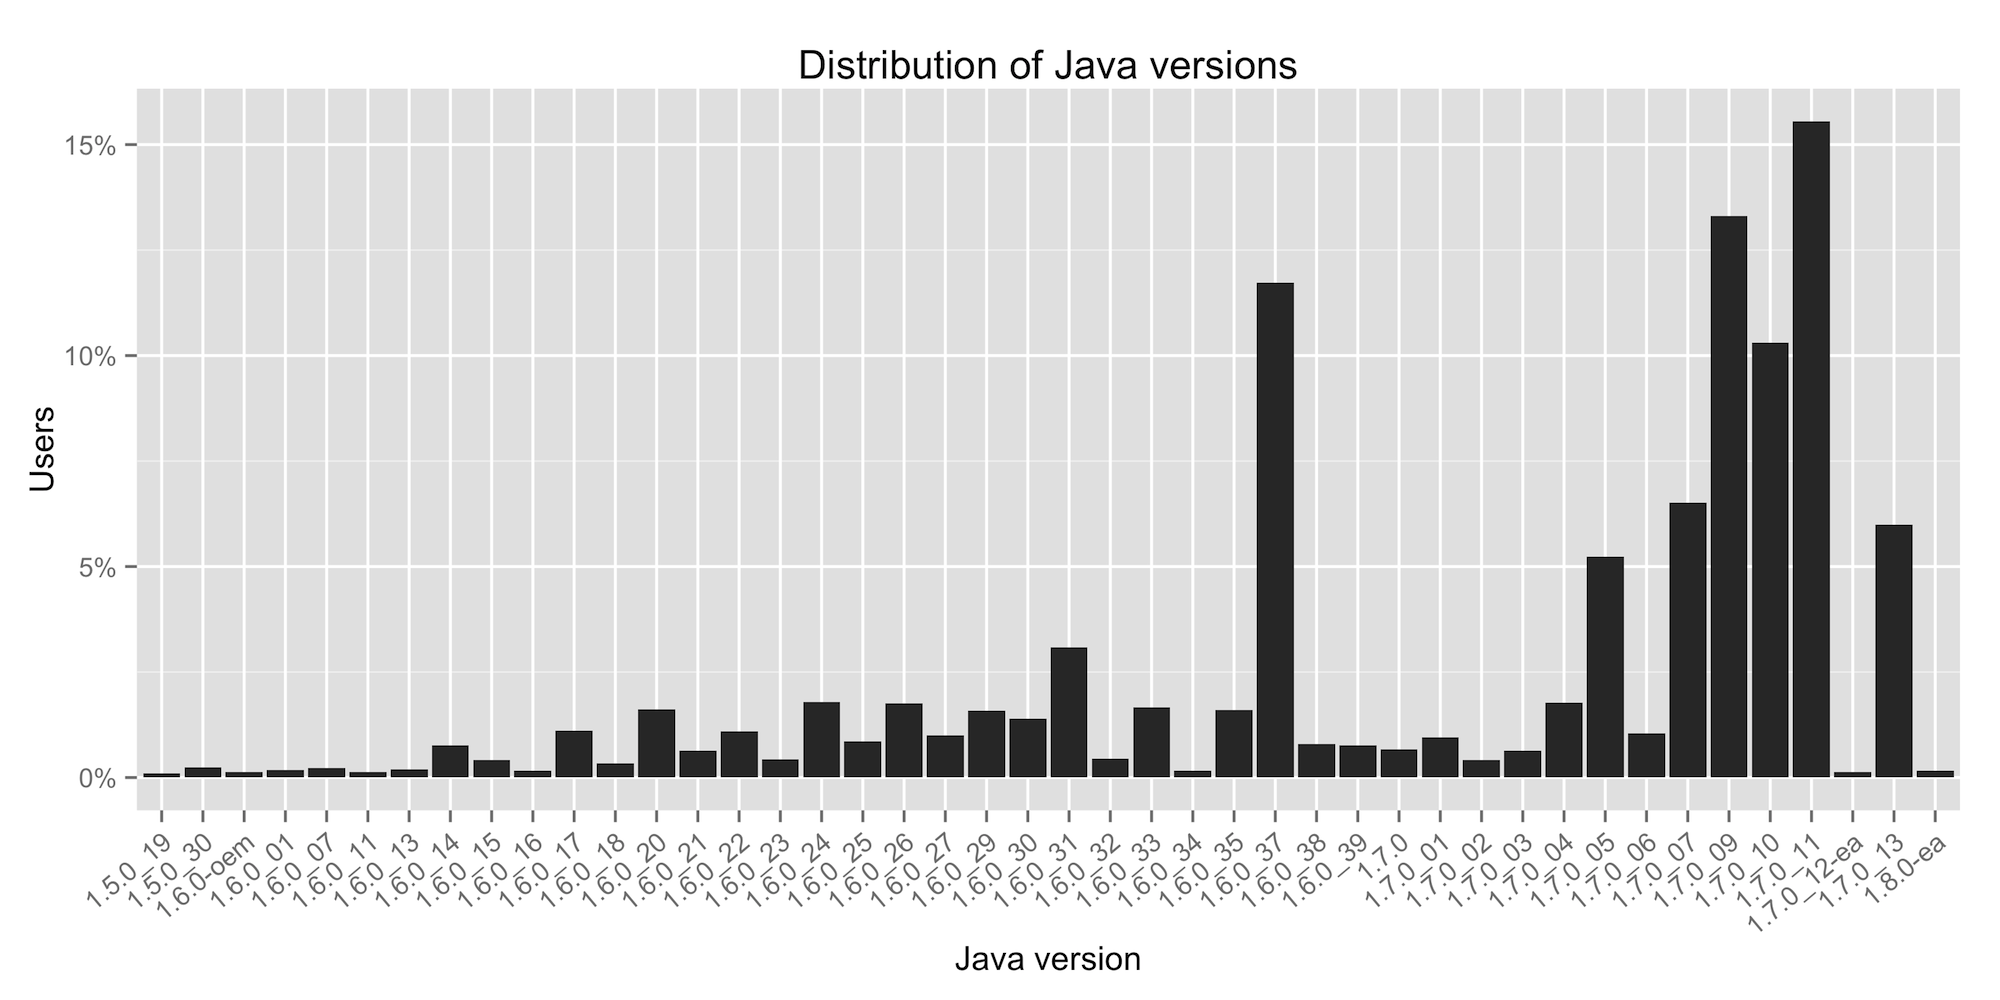 java version popularity, ordered by version number